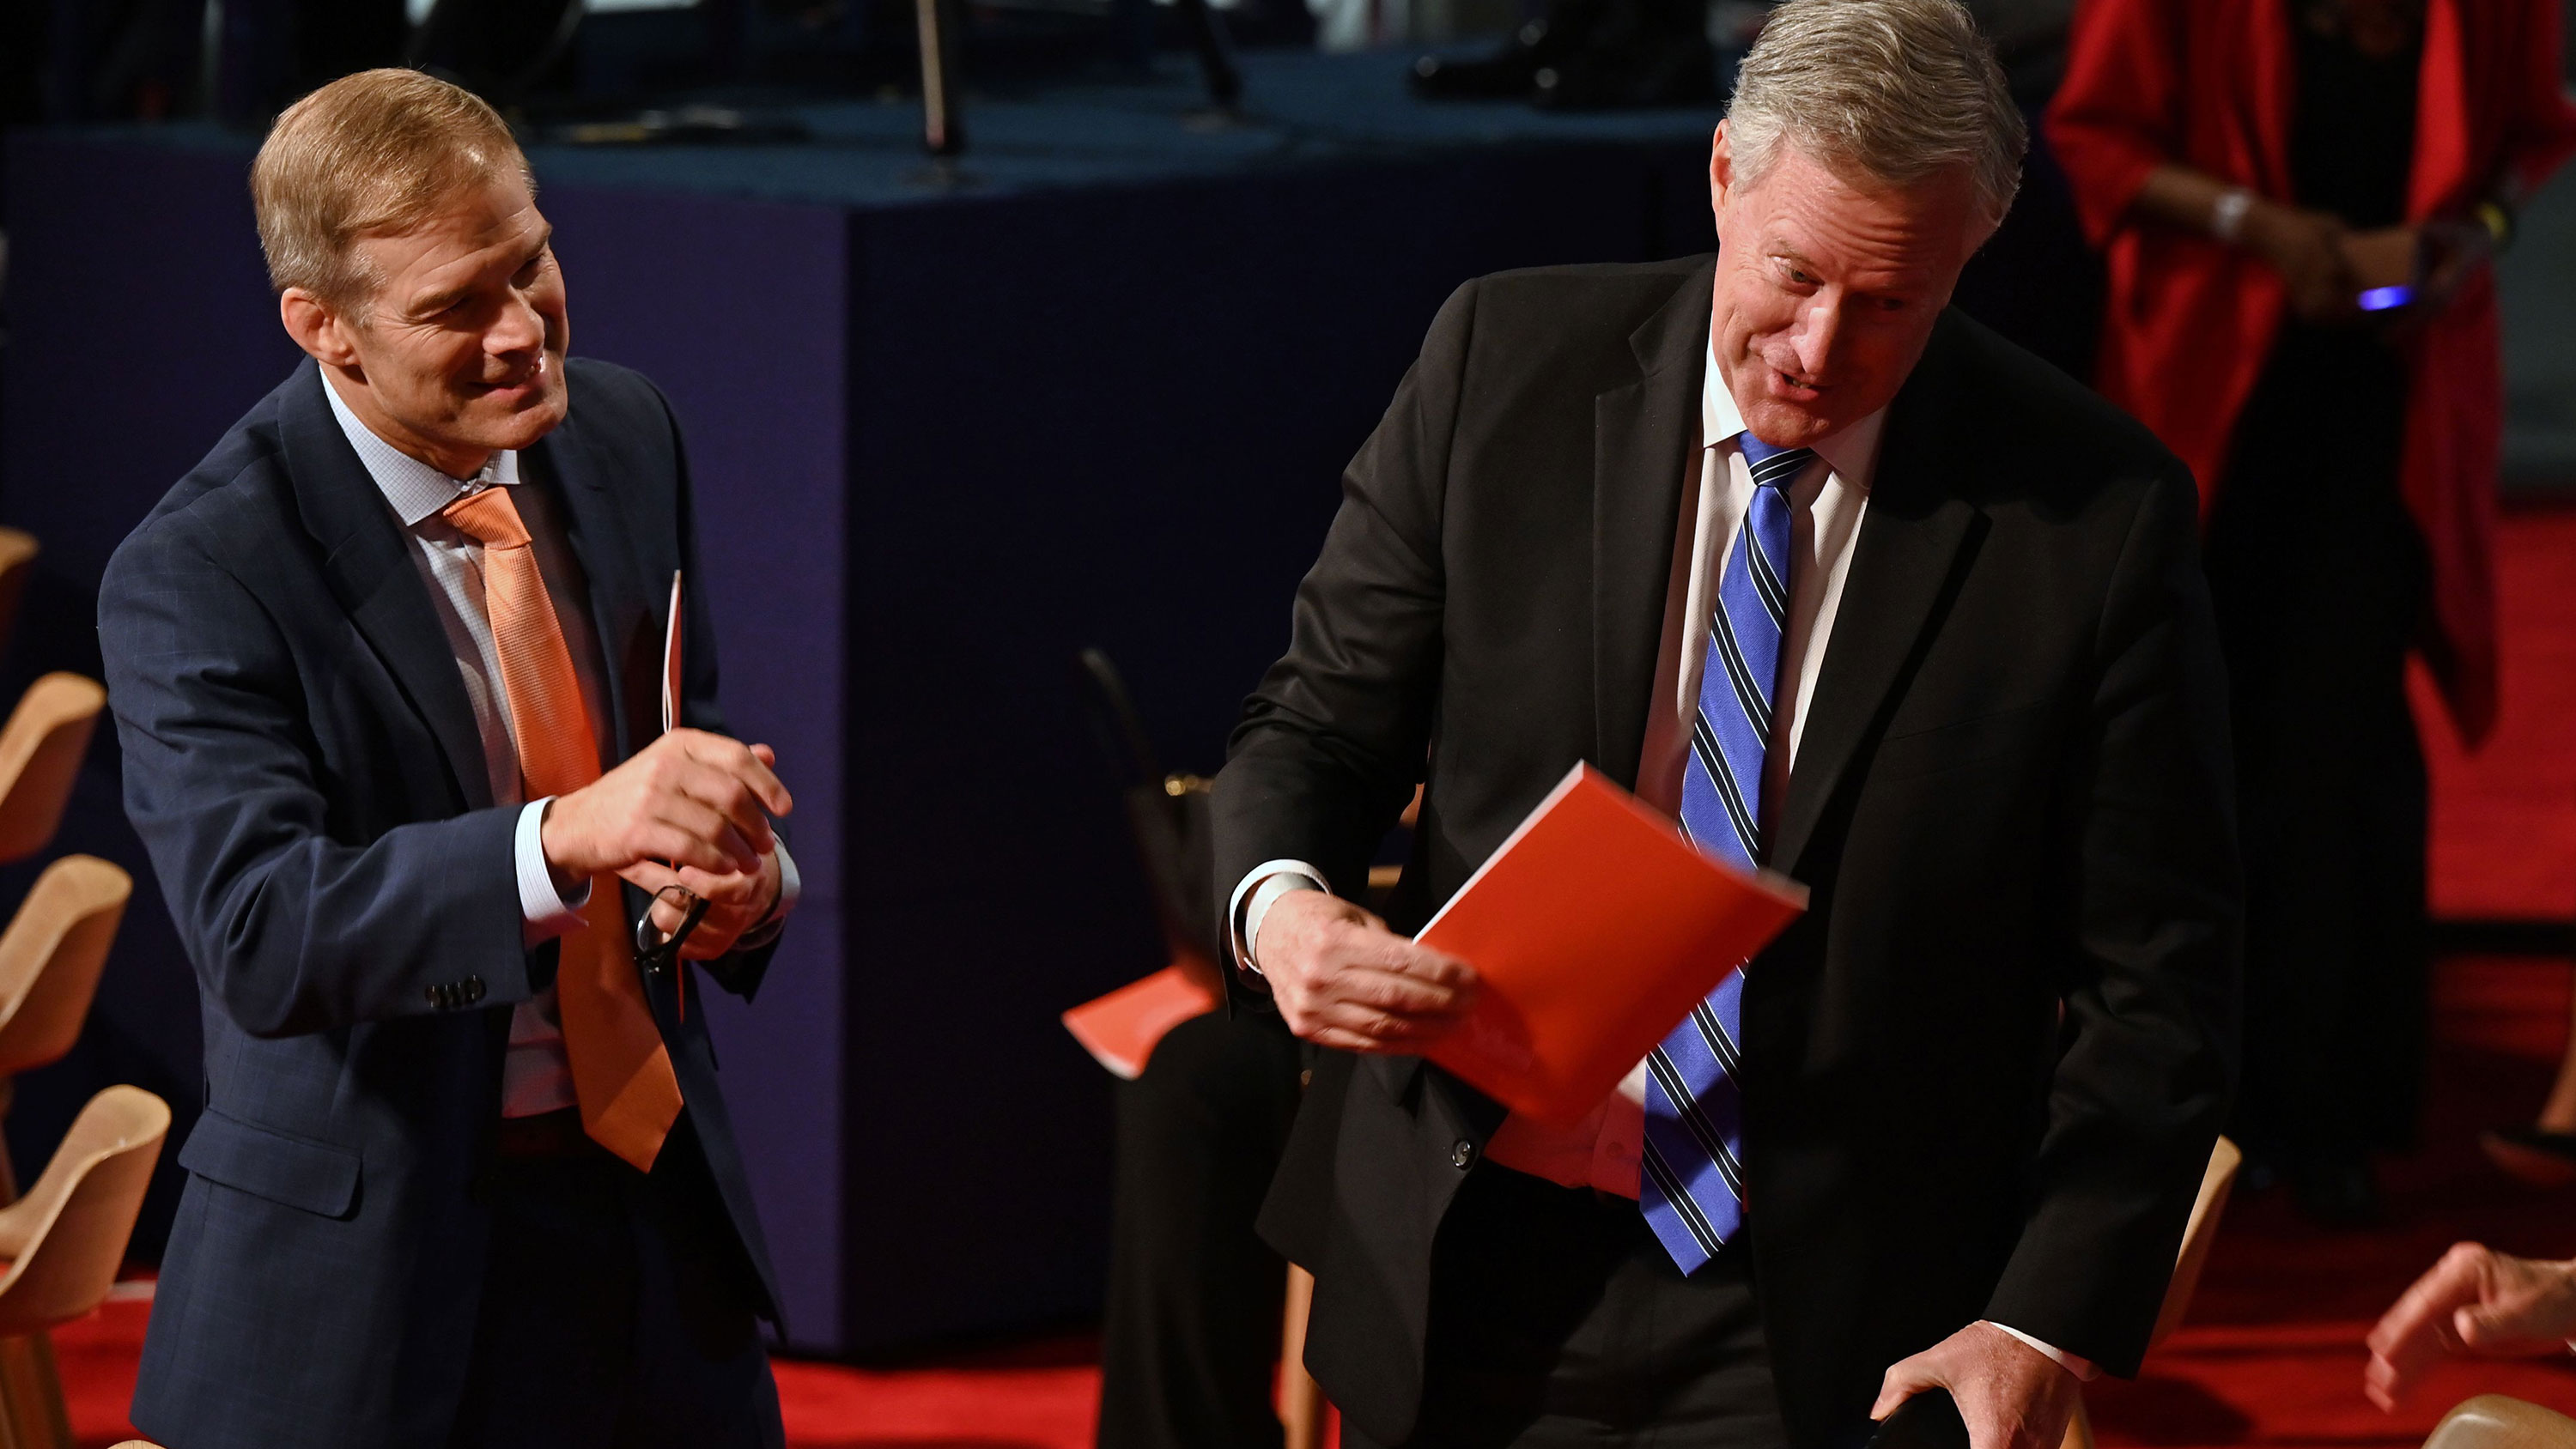 US Representative from Ohio Jim Jordan, left, and White House Chief of Staff Mark Meadows, right, are seen ahead of the first presidential debate in Cleveland, Ohio, on September 29.